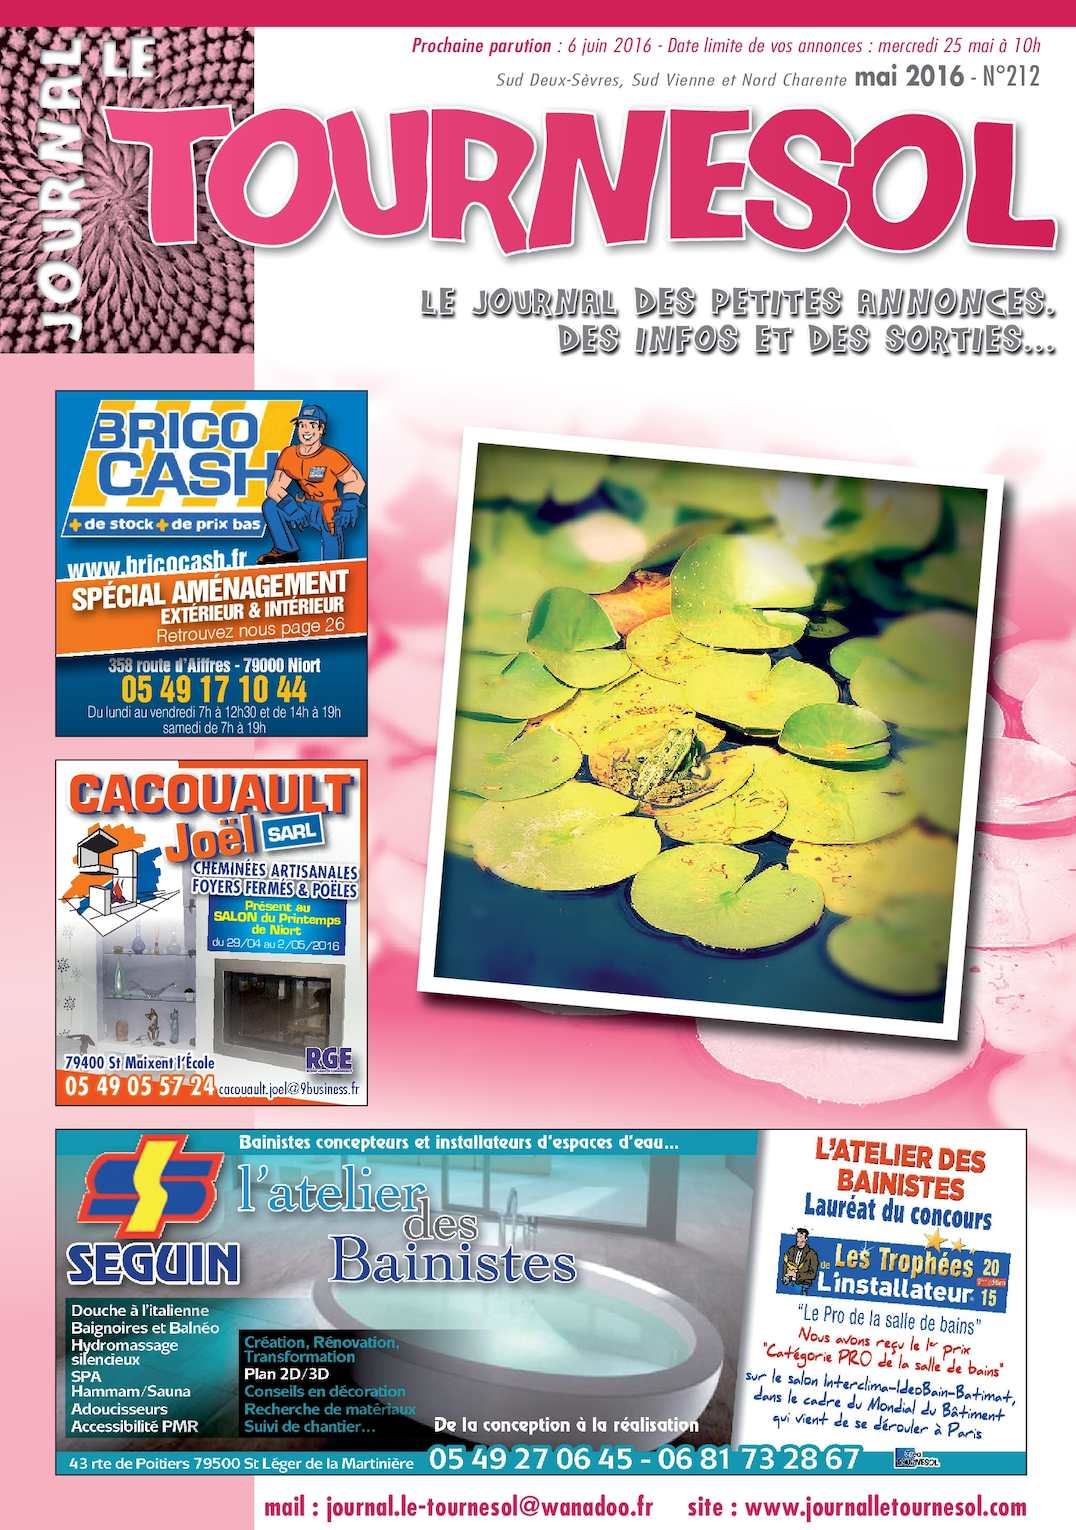 Salon De Jardin Blooma Génial Calaméo Journal Le tournesol Mai 2016 Of 32 Unique Salon De Jardin Blooma